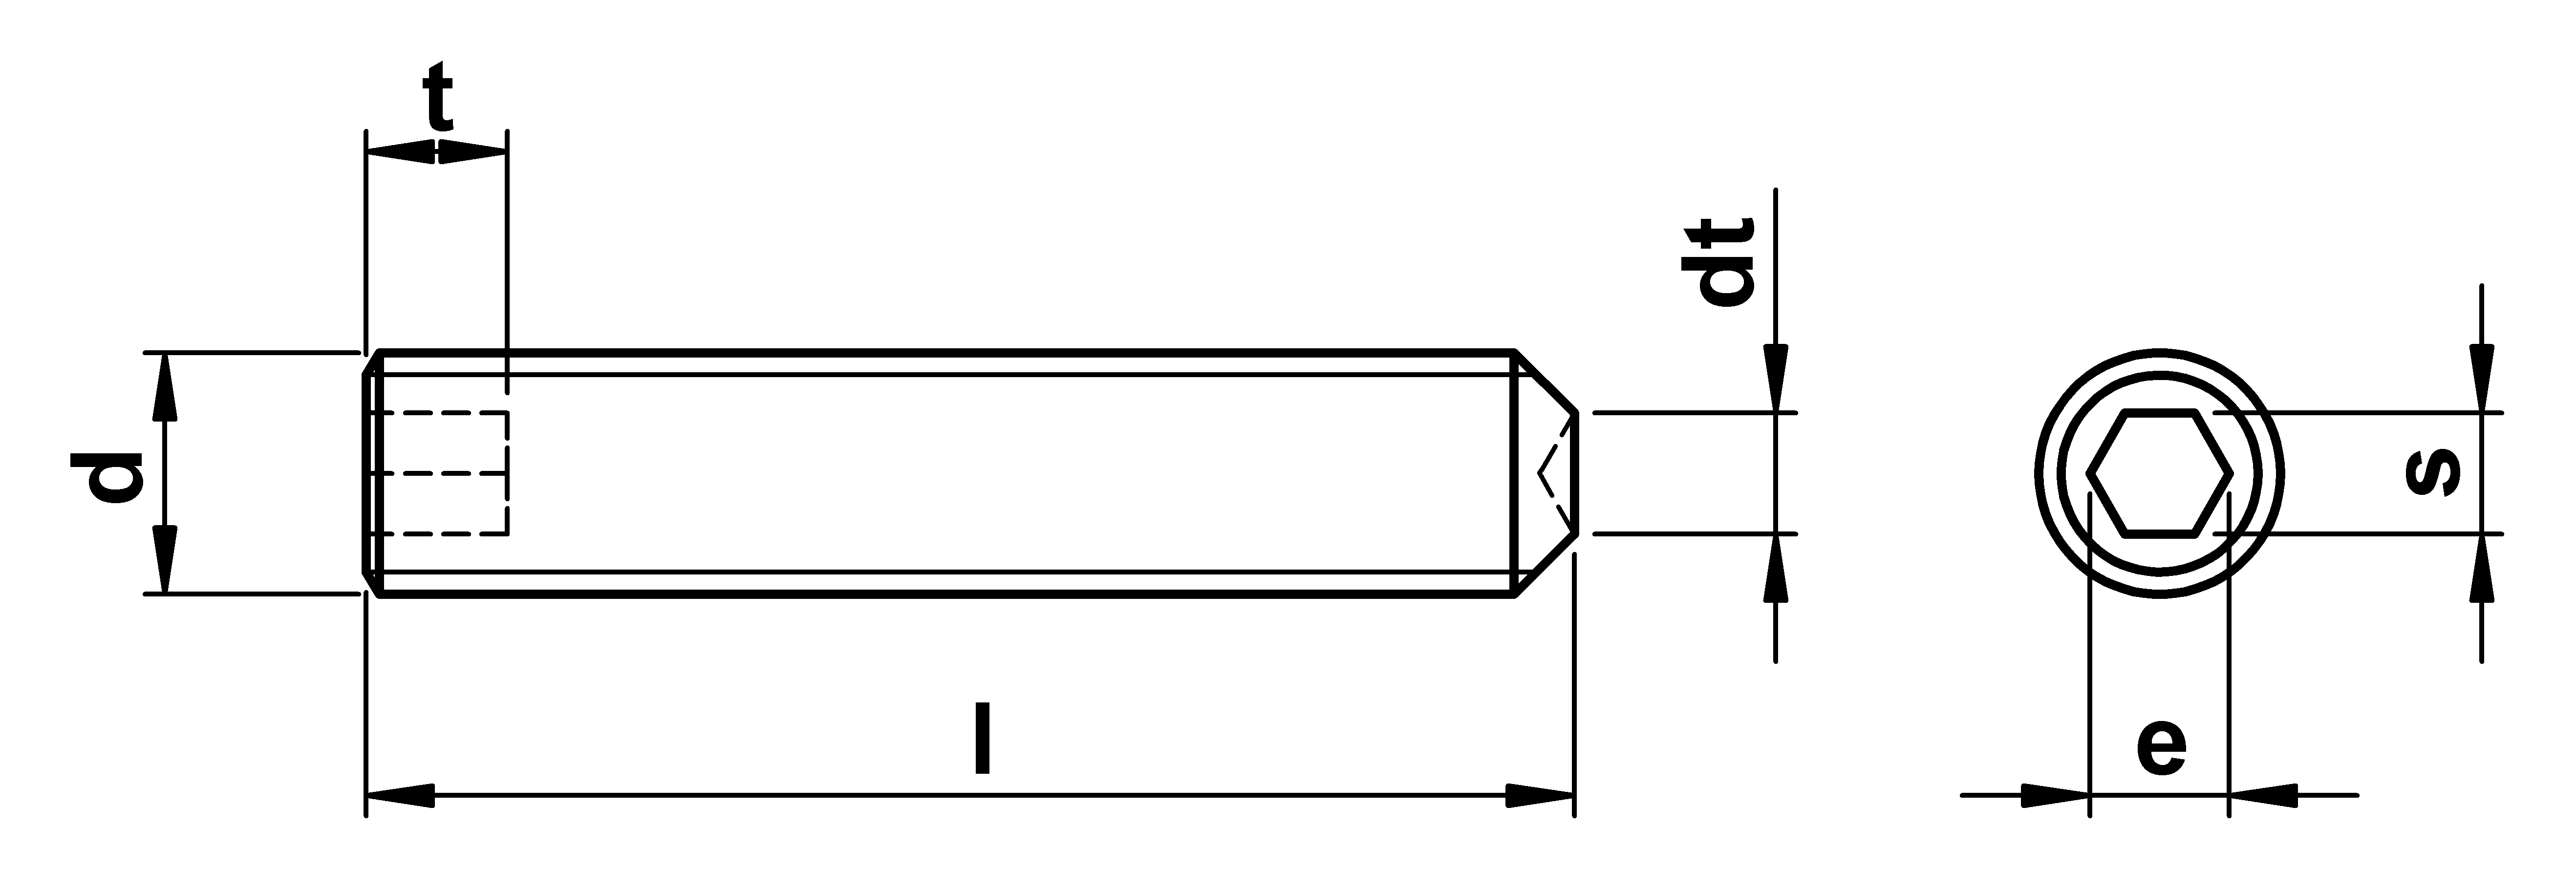 technical drawing of Cup Point Grub Screws ISO 4029 (DIN 916)